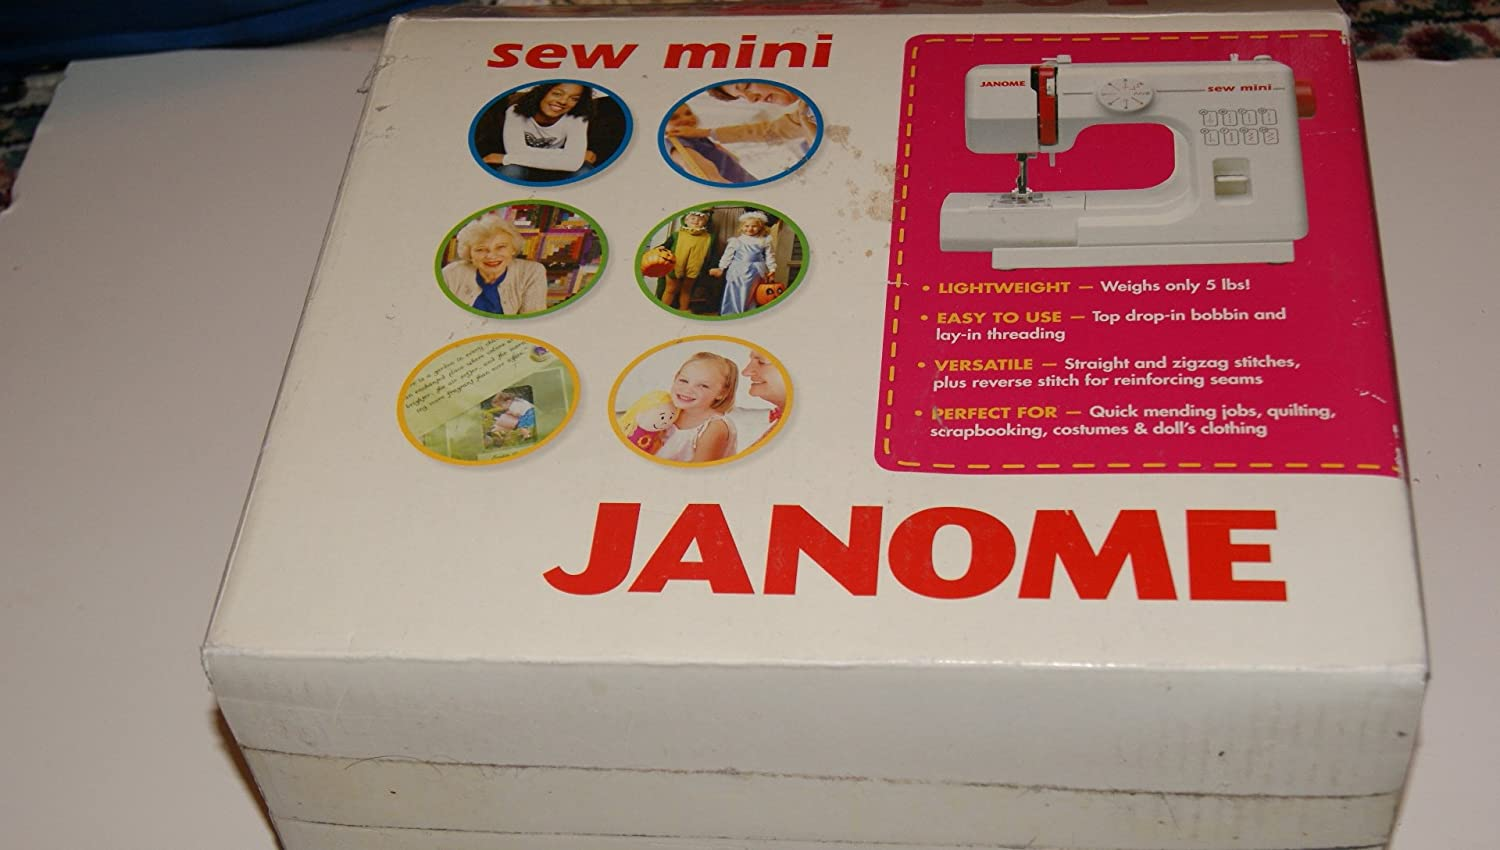 Amazoncom Janome Sew Mini 124 Sewing Machine Thread A Diagram Labeled